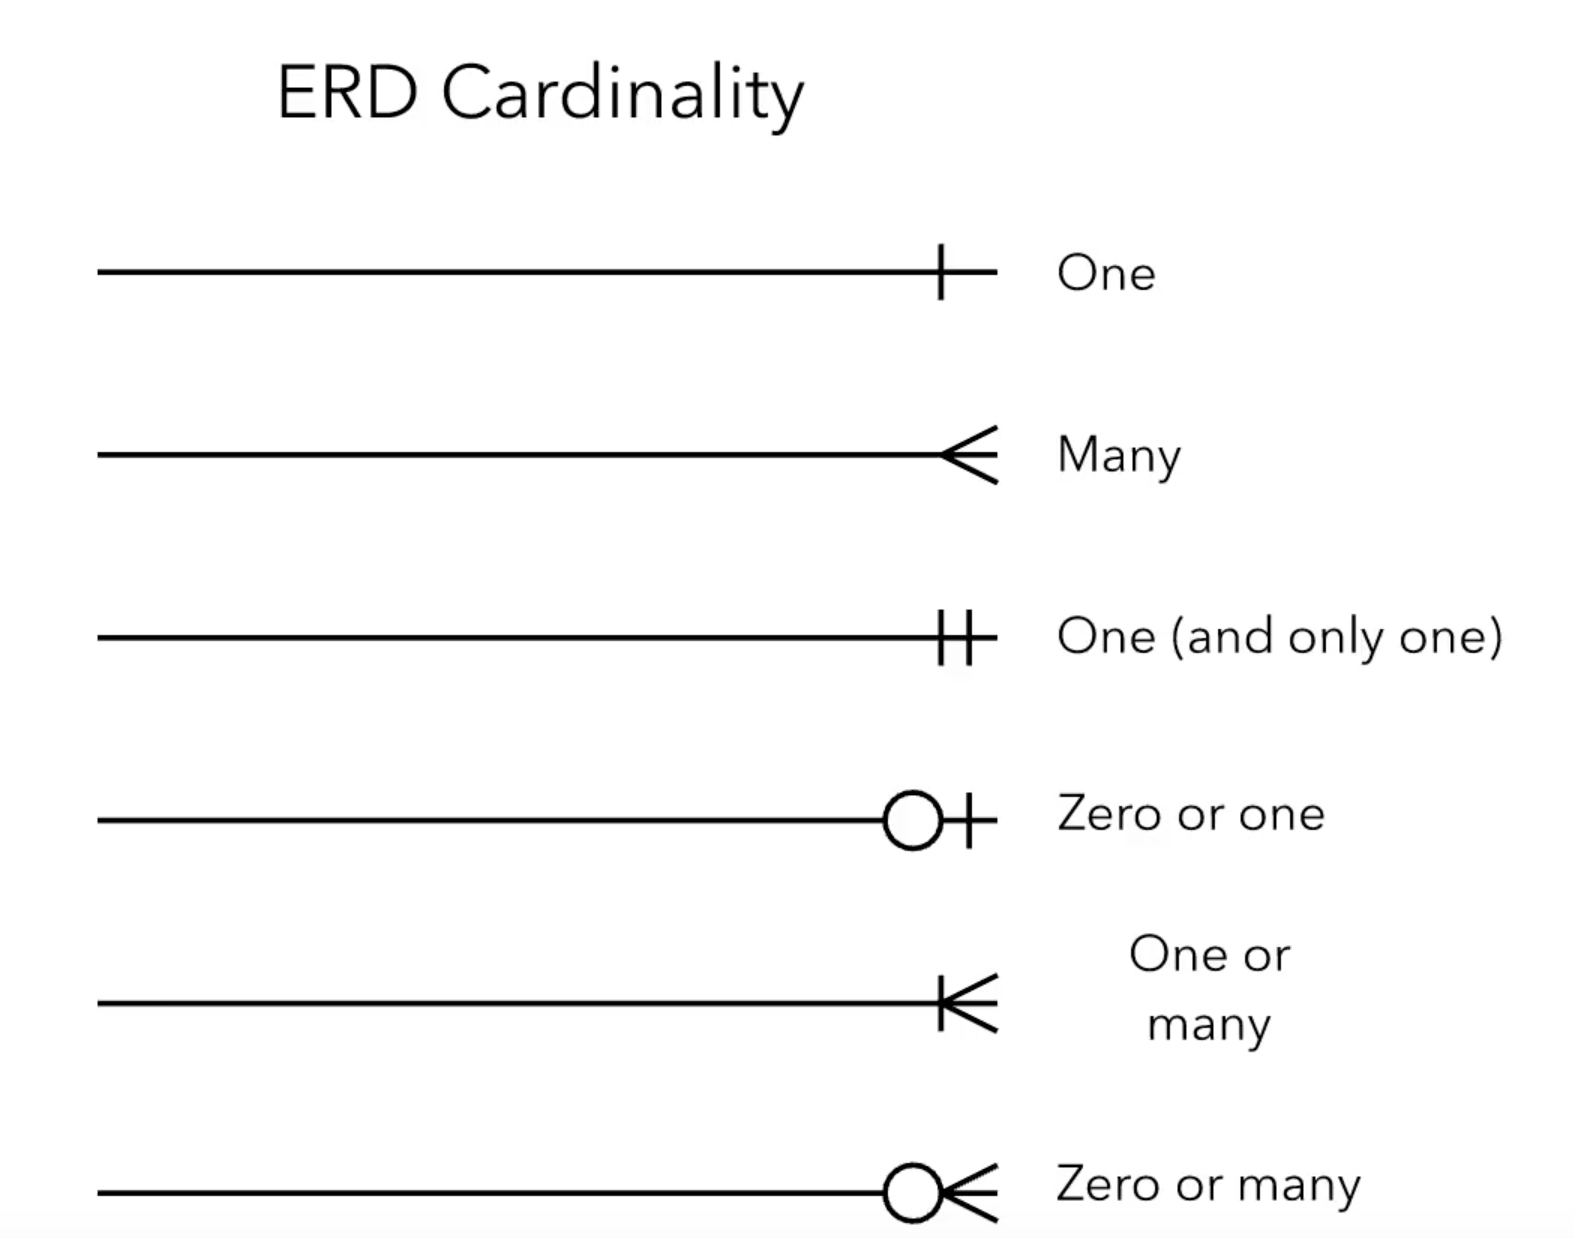 Er Diagram - Are The Relations And Cardinalities Correct for Erd Cardinality